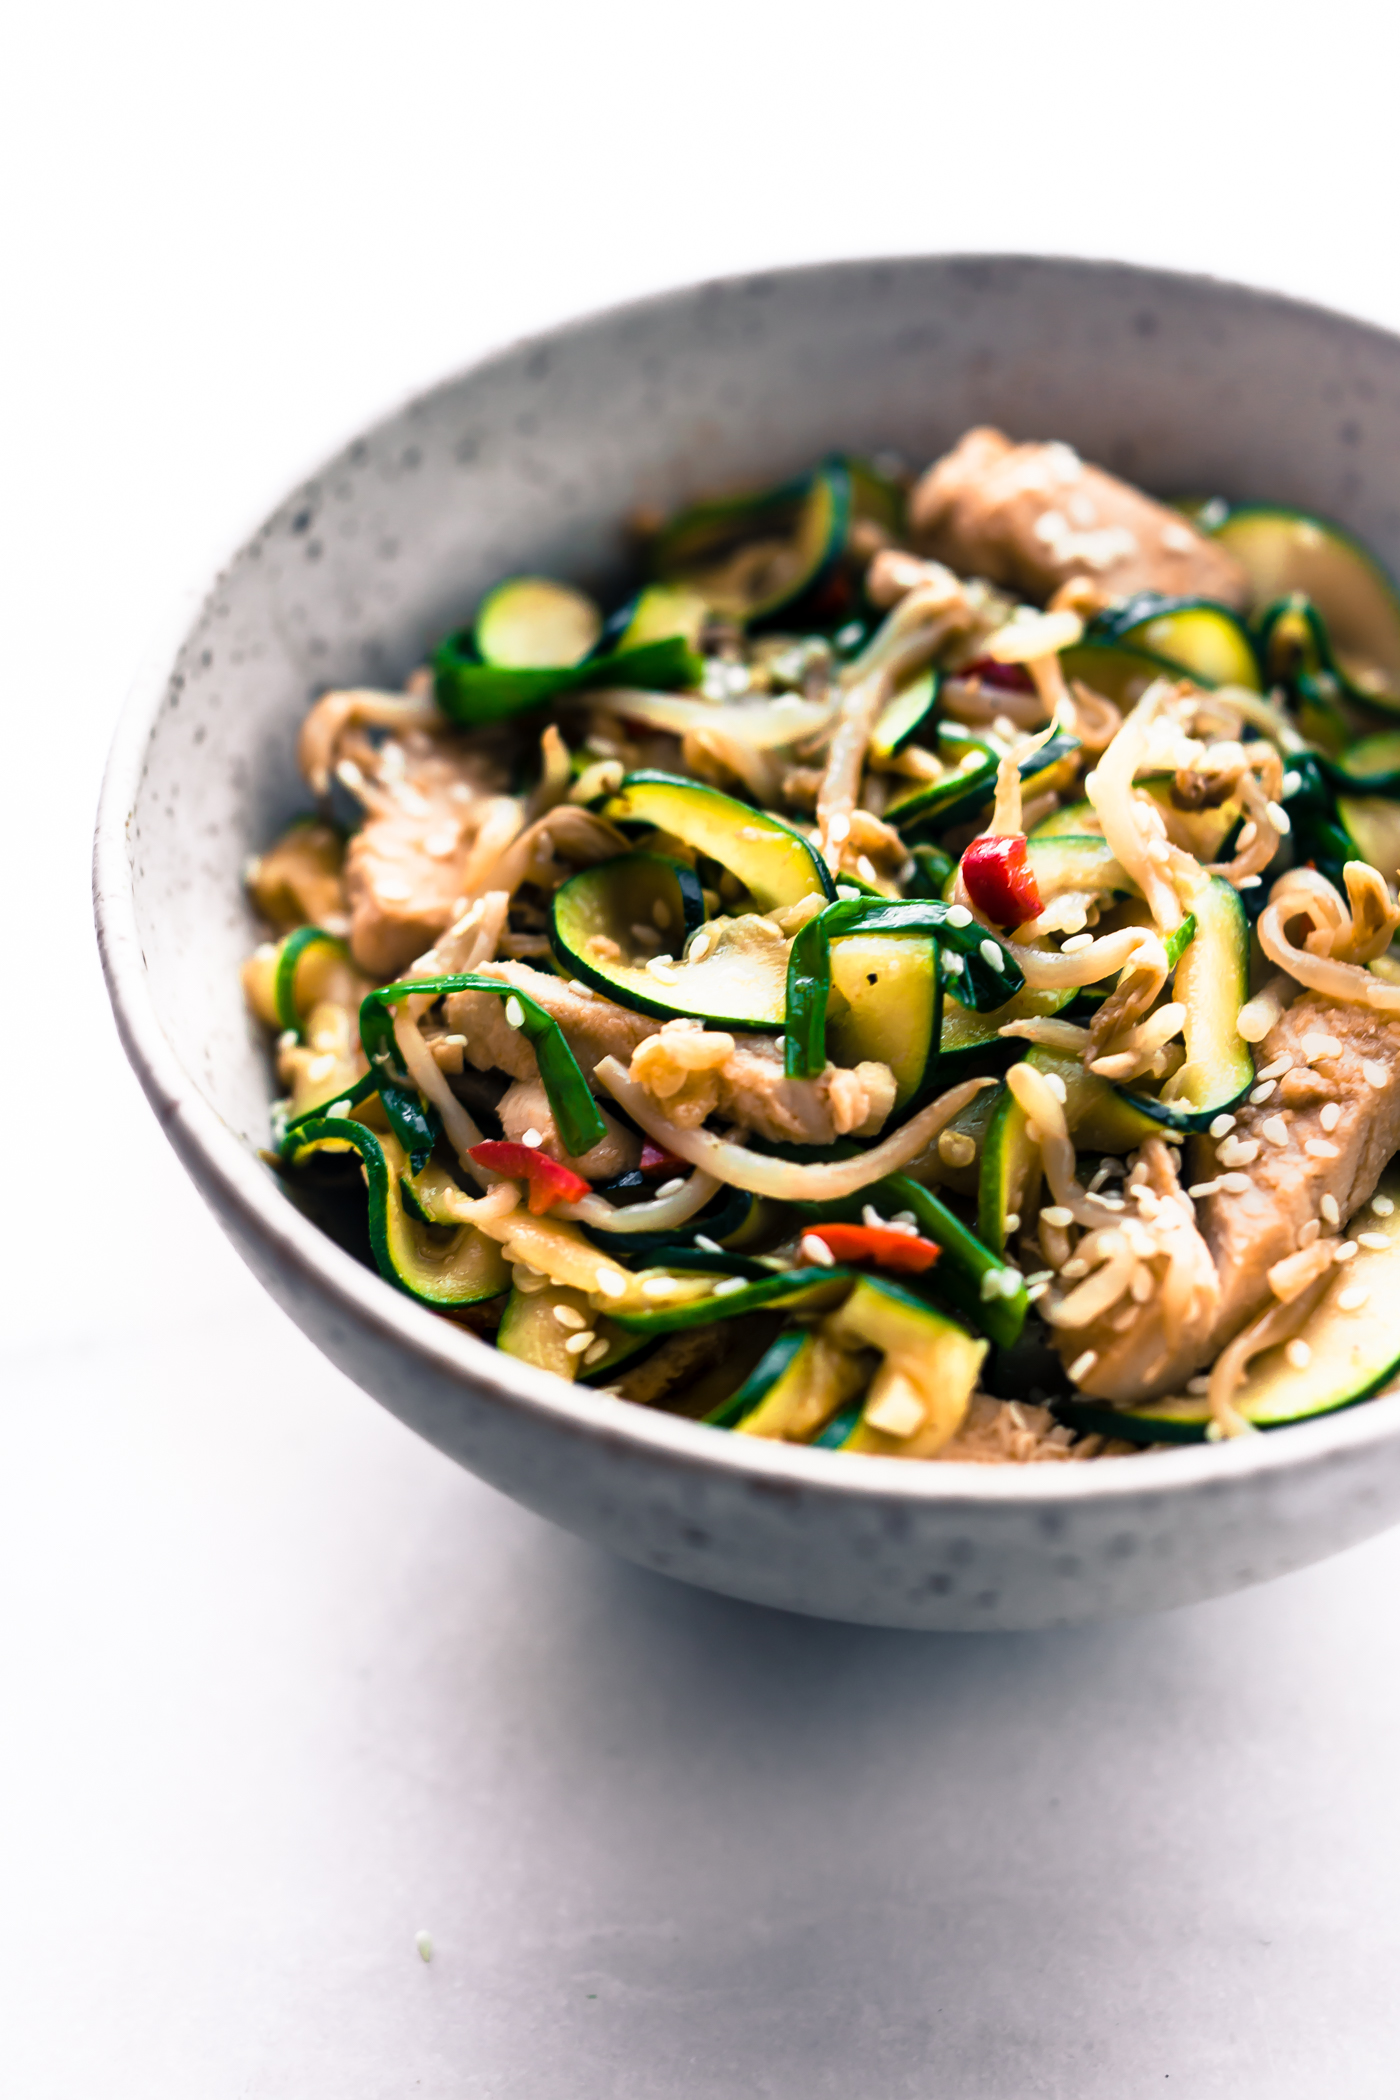 bowl of zucchini stir fry noodles and leftover Thanksgiving turkey and veggies